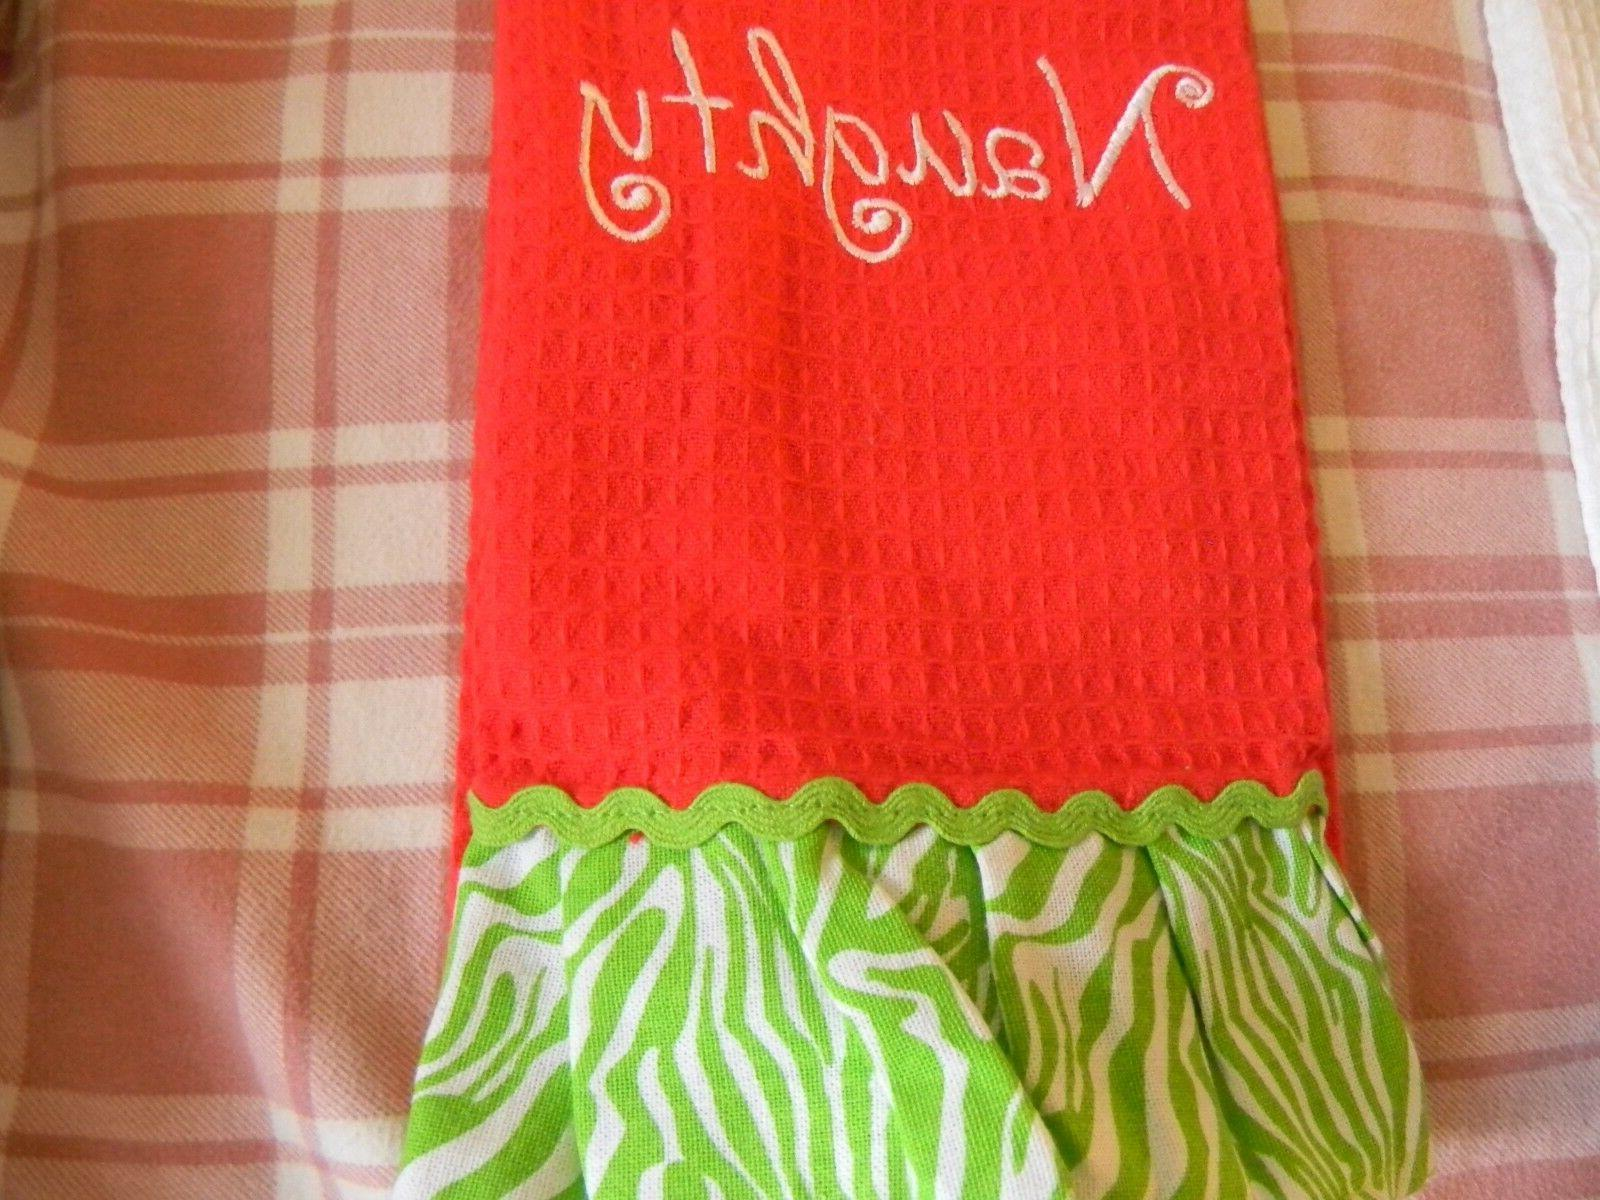 Kitchen towel satin embroidery NAUGHTY red to hang